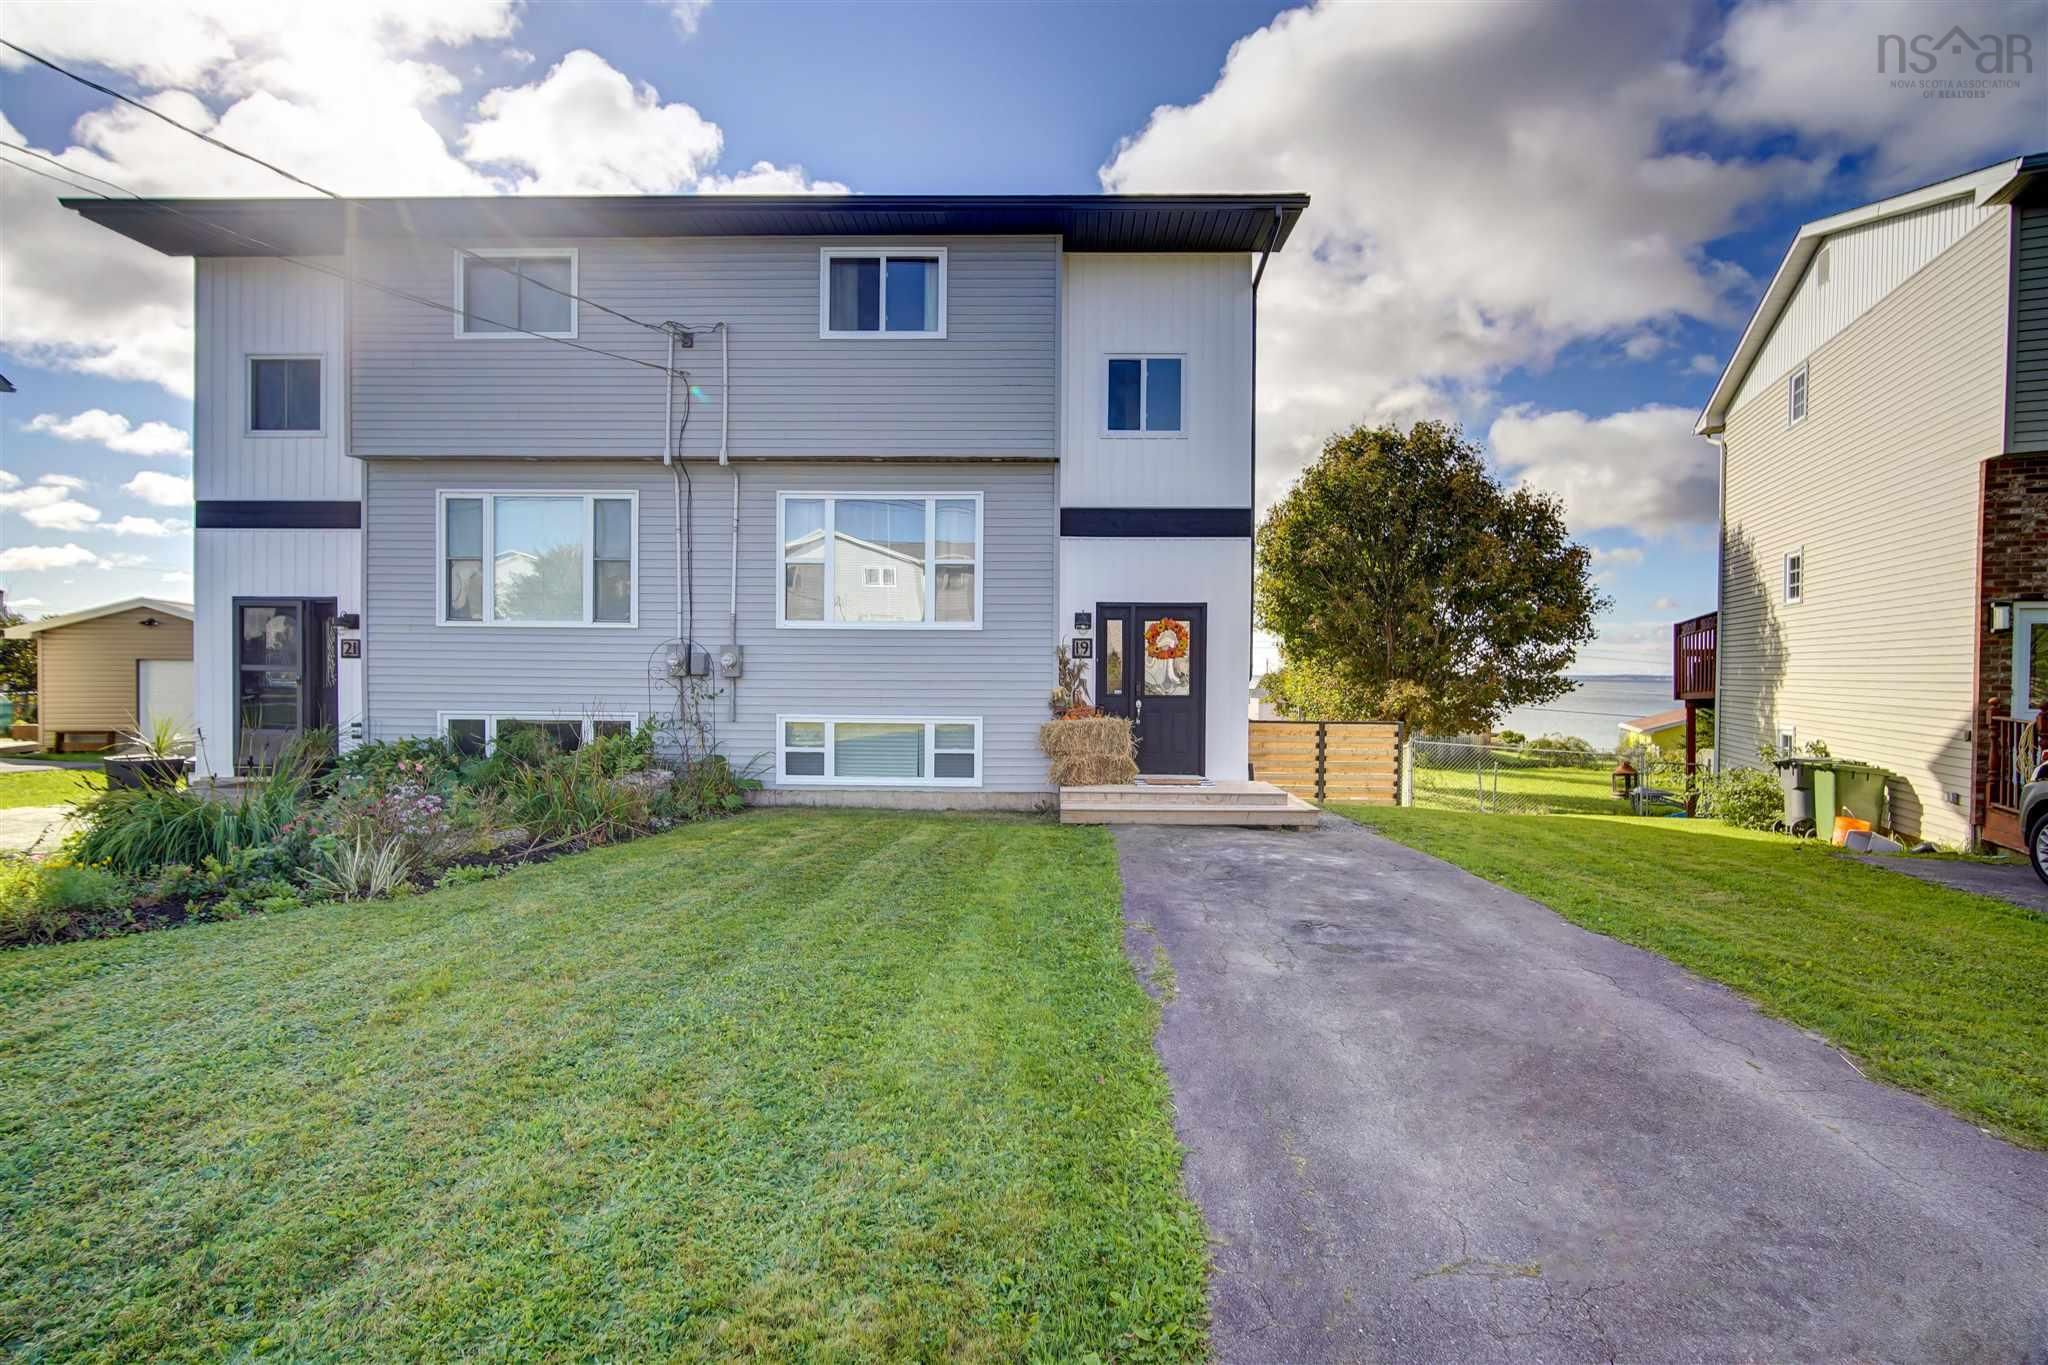 Main Photo: 19 Cannon Crescent in Eastern Passage: 11-Dartmouth Woodside, Eastern Passage, Cow Bay Residential for sale (Halifax-Dartmouth)  : MLS®# 202125391